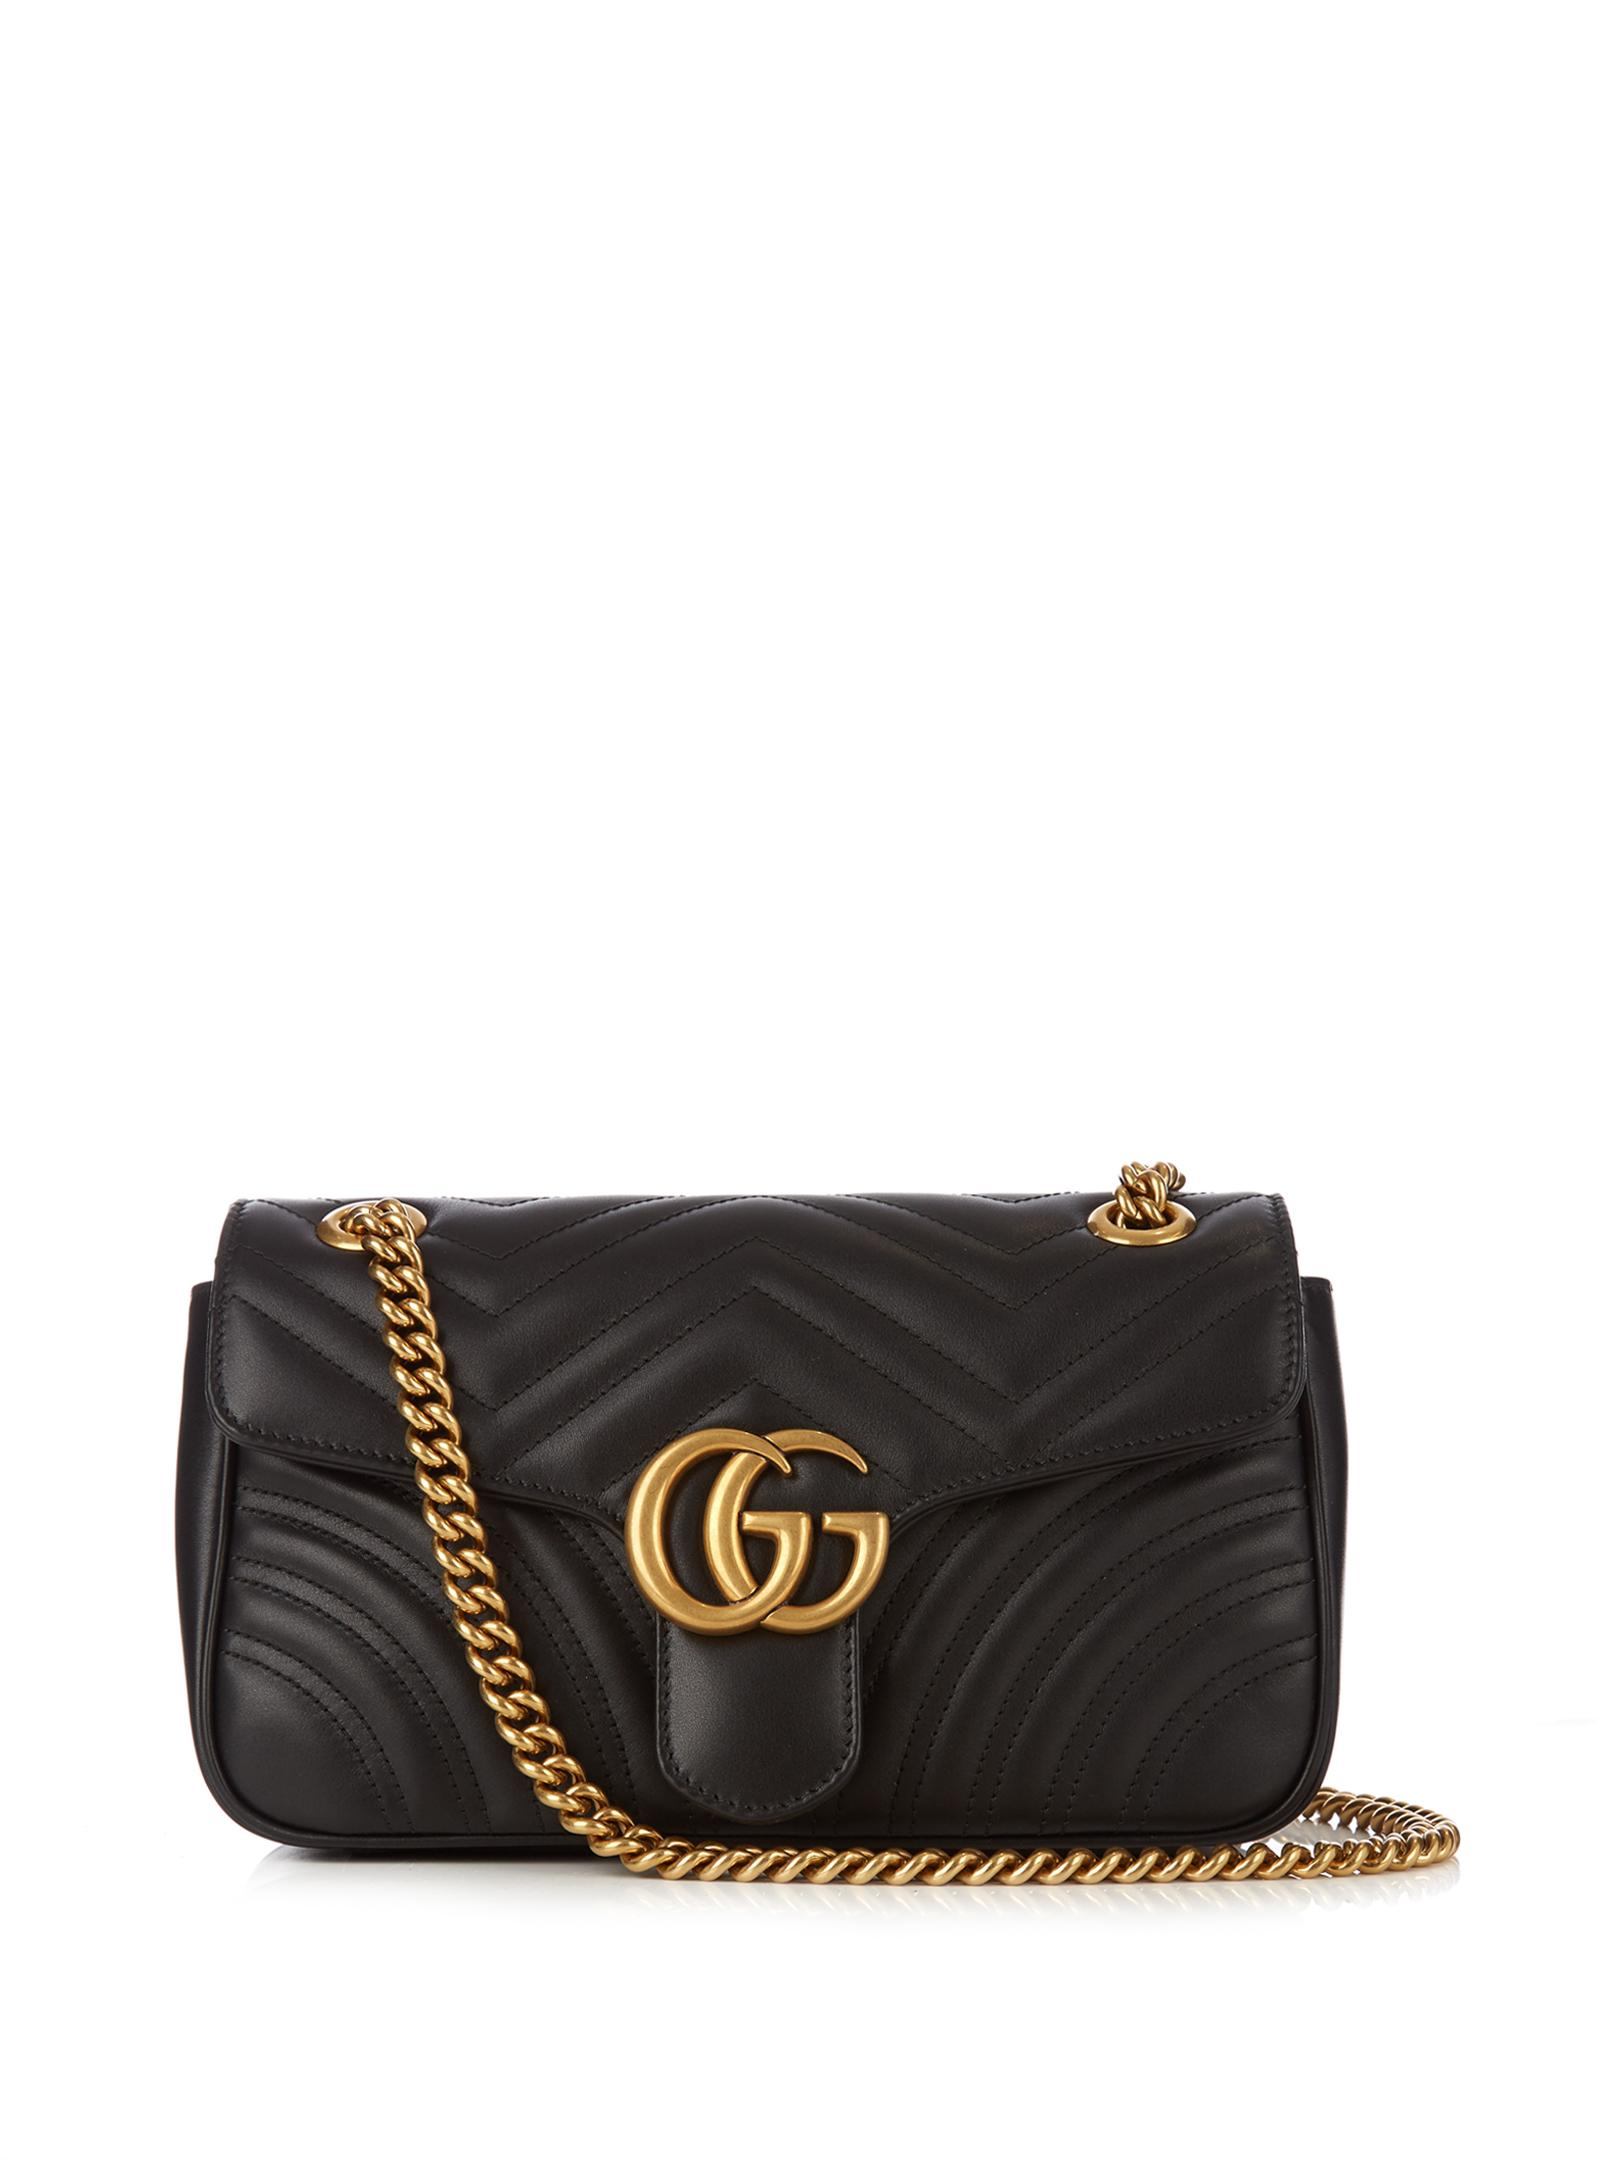 Gucci Gg Marmont Small Quilted-leather Bag in Black | Lyst Robert Graham Designer